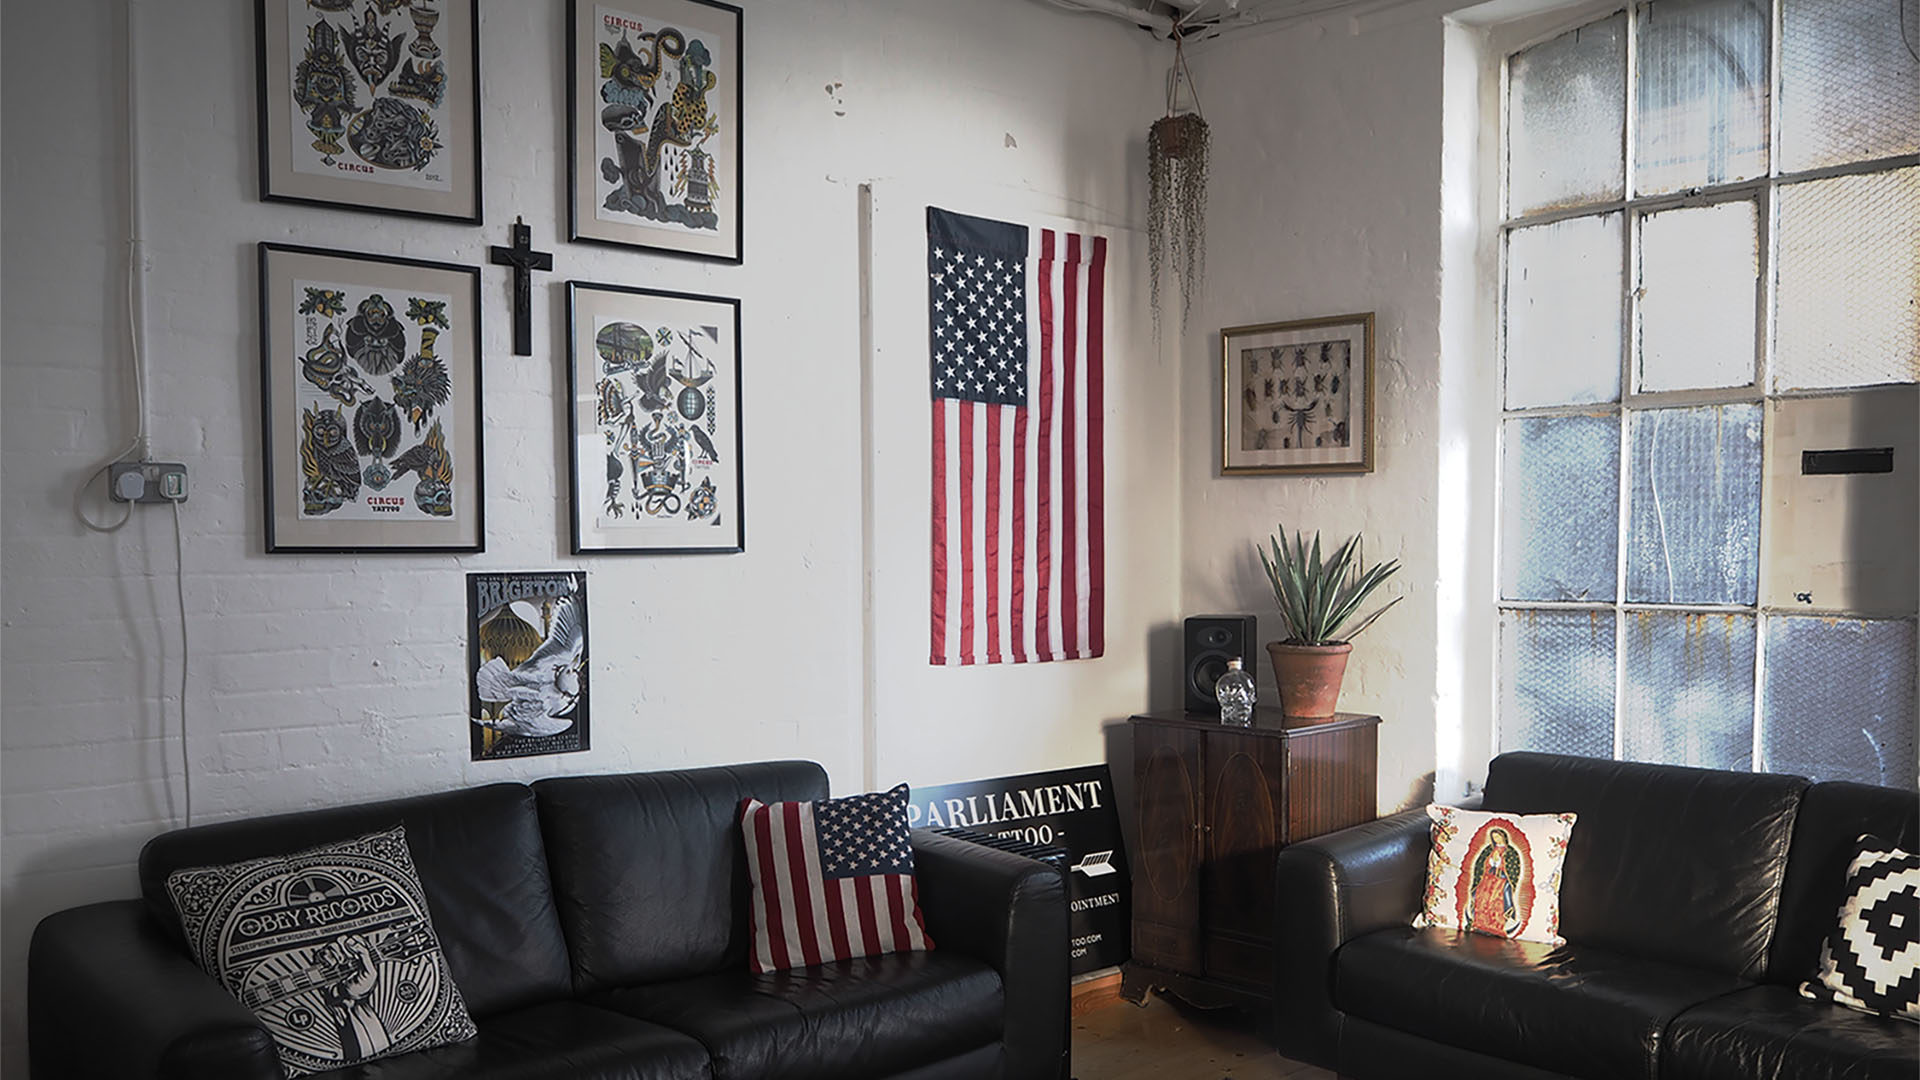 Reception room of Parliament tattoo featuring two leather sofas, drawings of tattoos and an American flag hanging on a white wall.